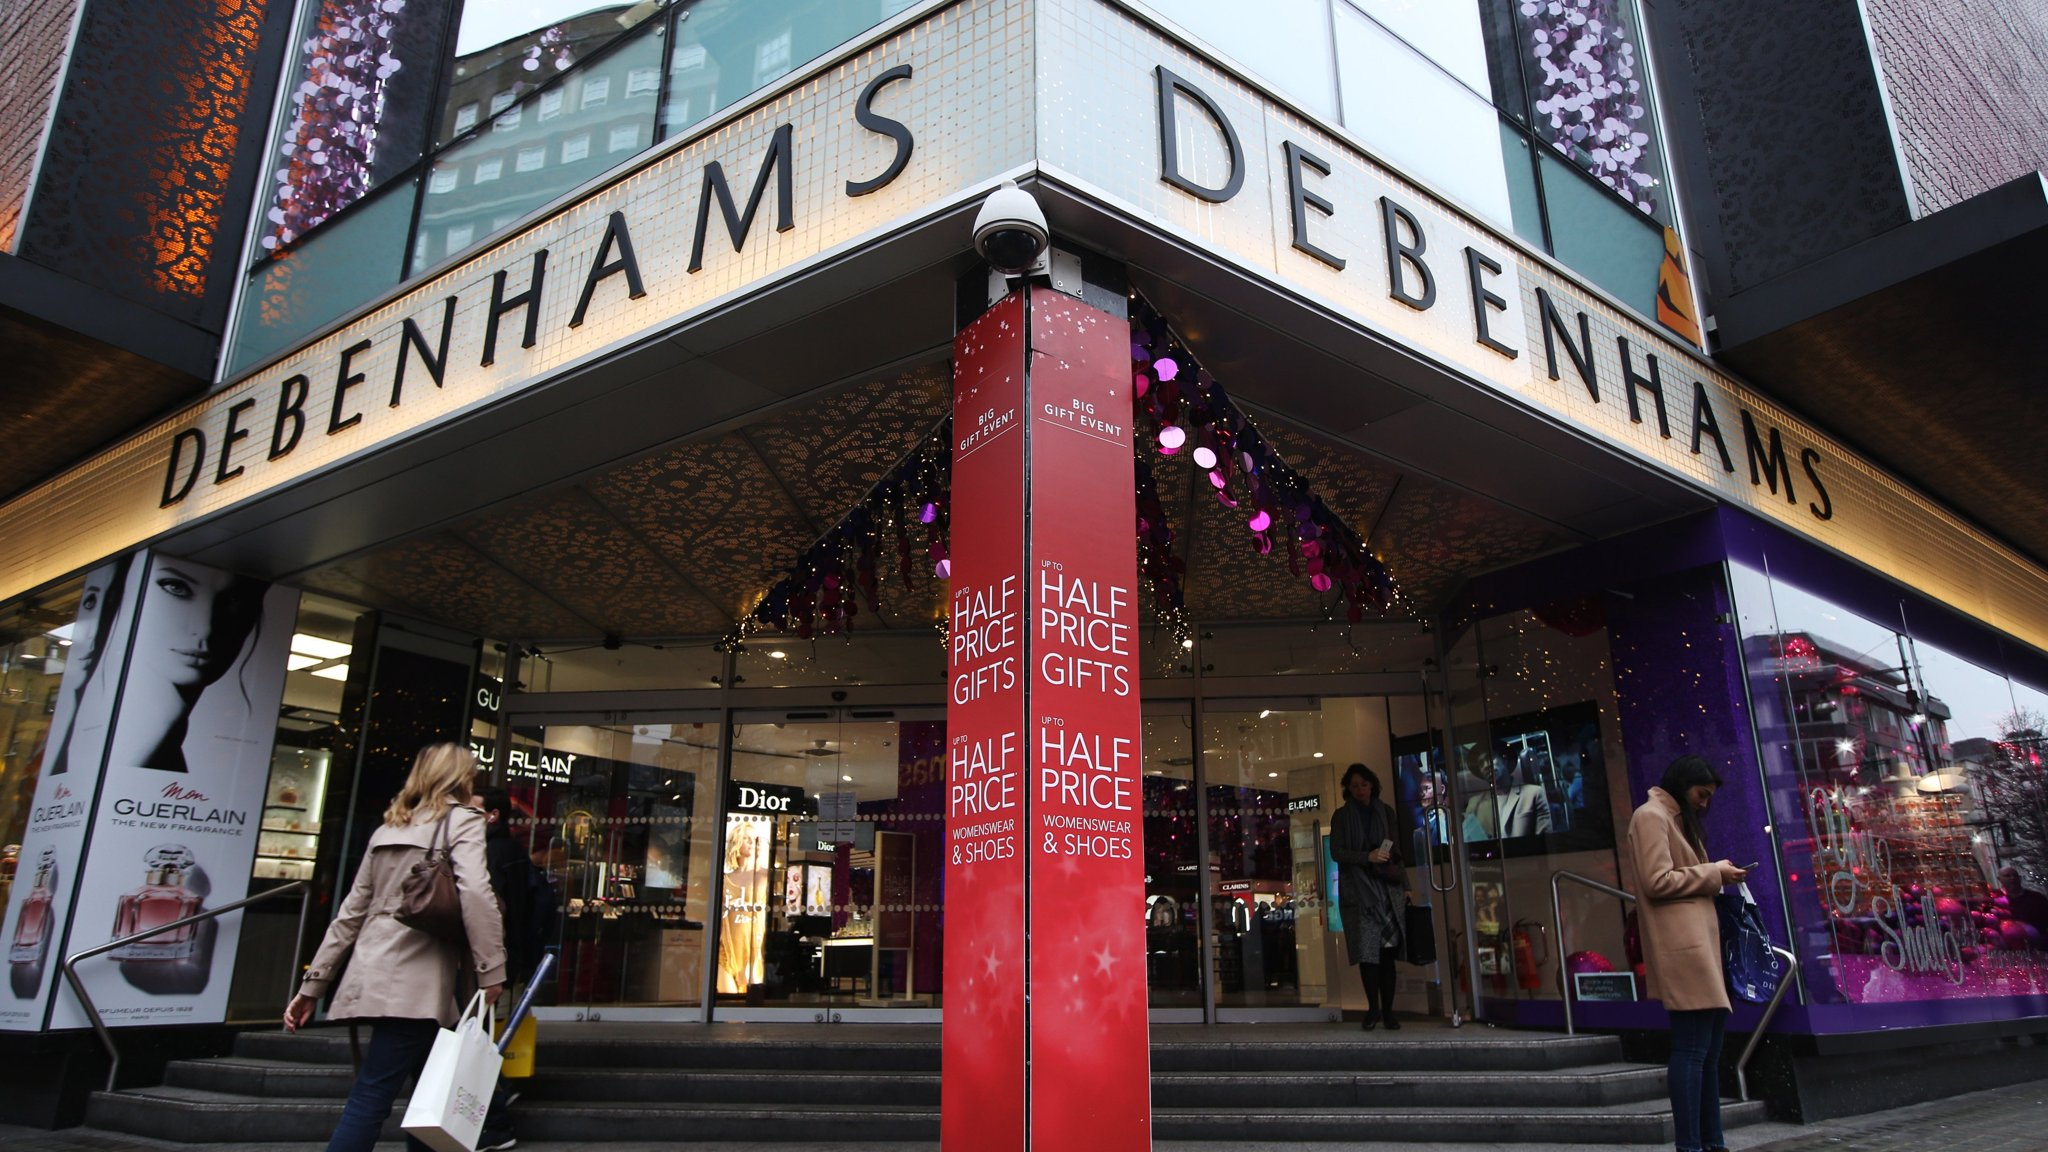 Debenhams denies reports hinting at cash crunch over supplier insurance recommend to wear in summer in 2019